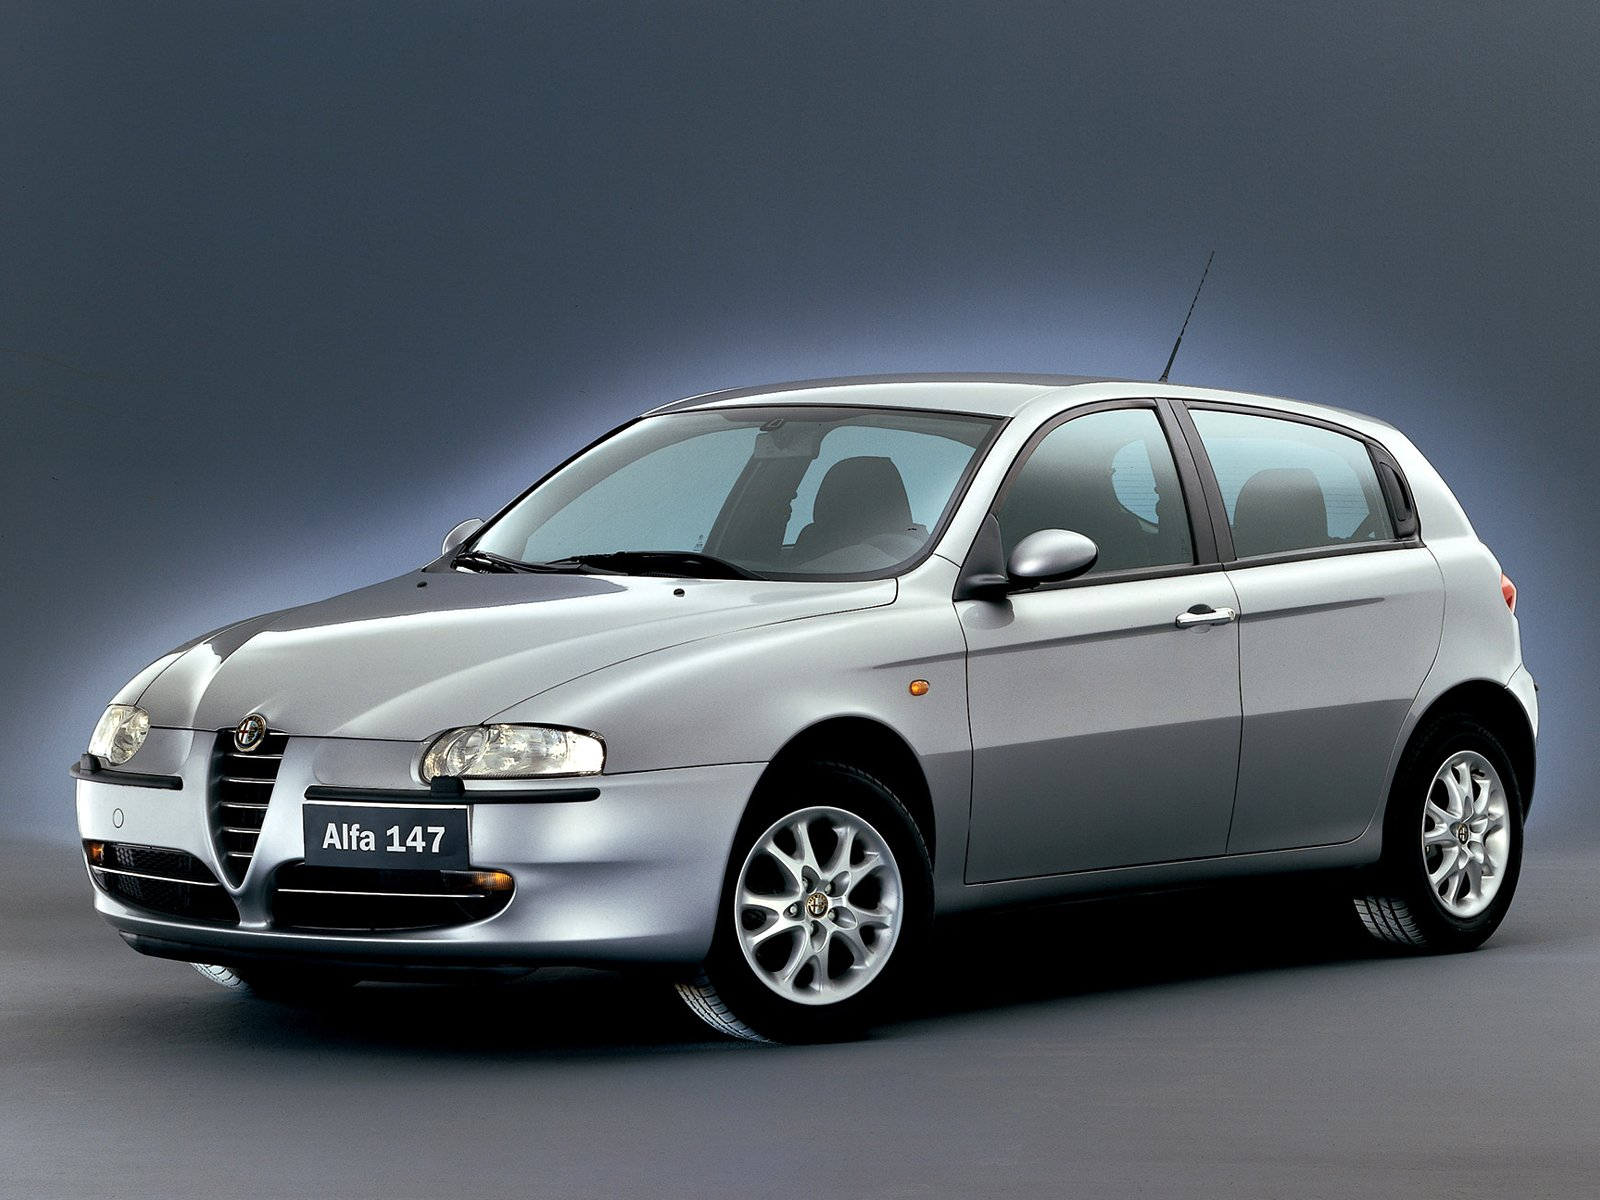 alfa romeo 147. Black Bedroom Furniture Sets. Home Design Ideas